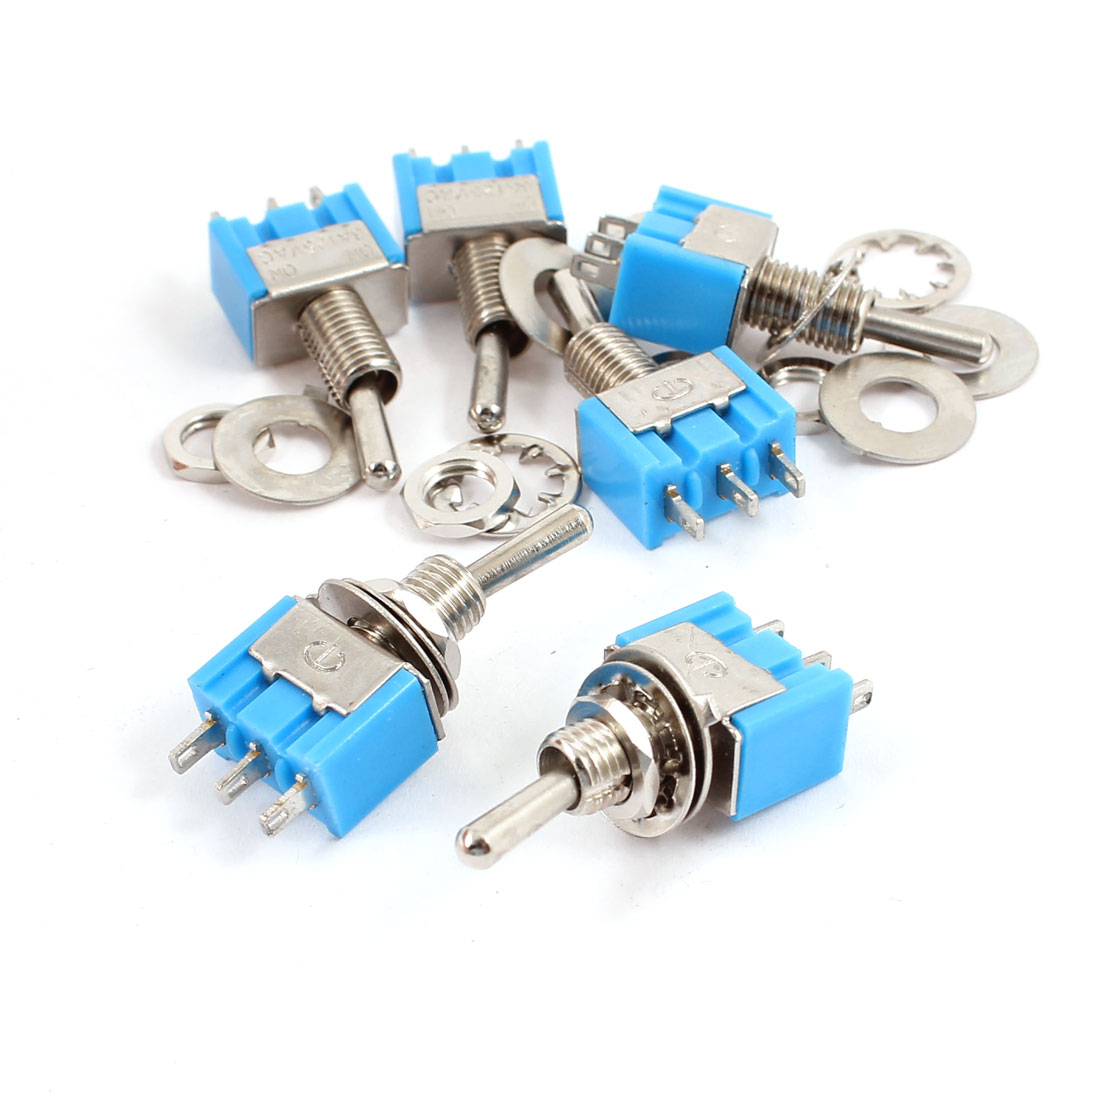 AC 125V 6A 3 Terminals Latching SPDT 2 Position On/On Toggle Switch Blue 6pcs